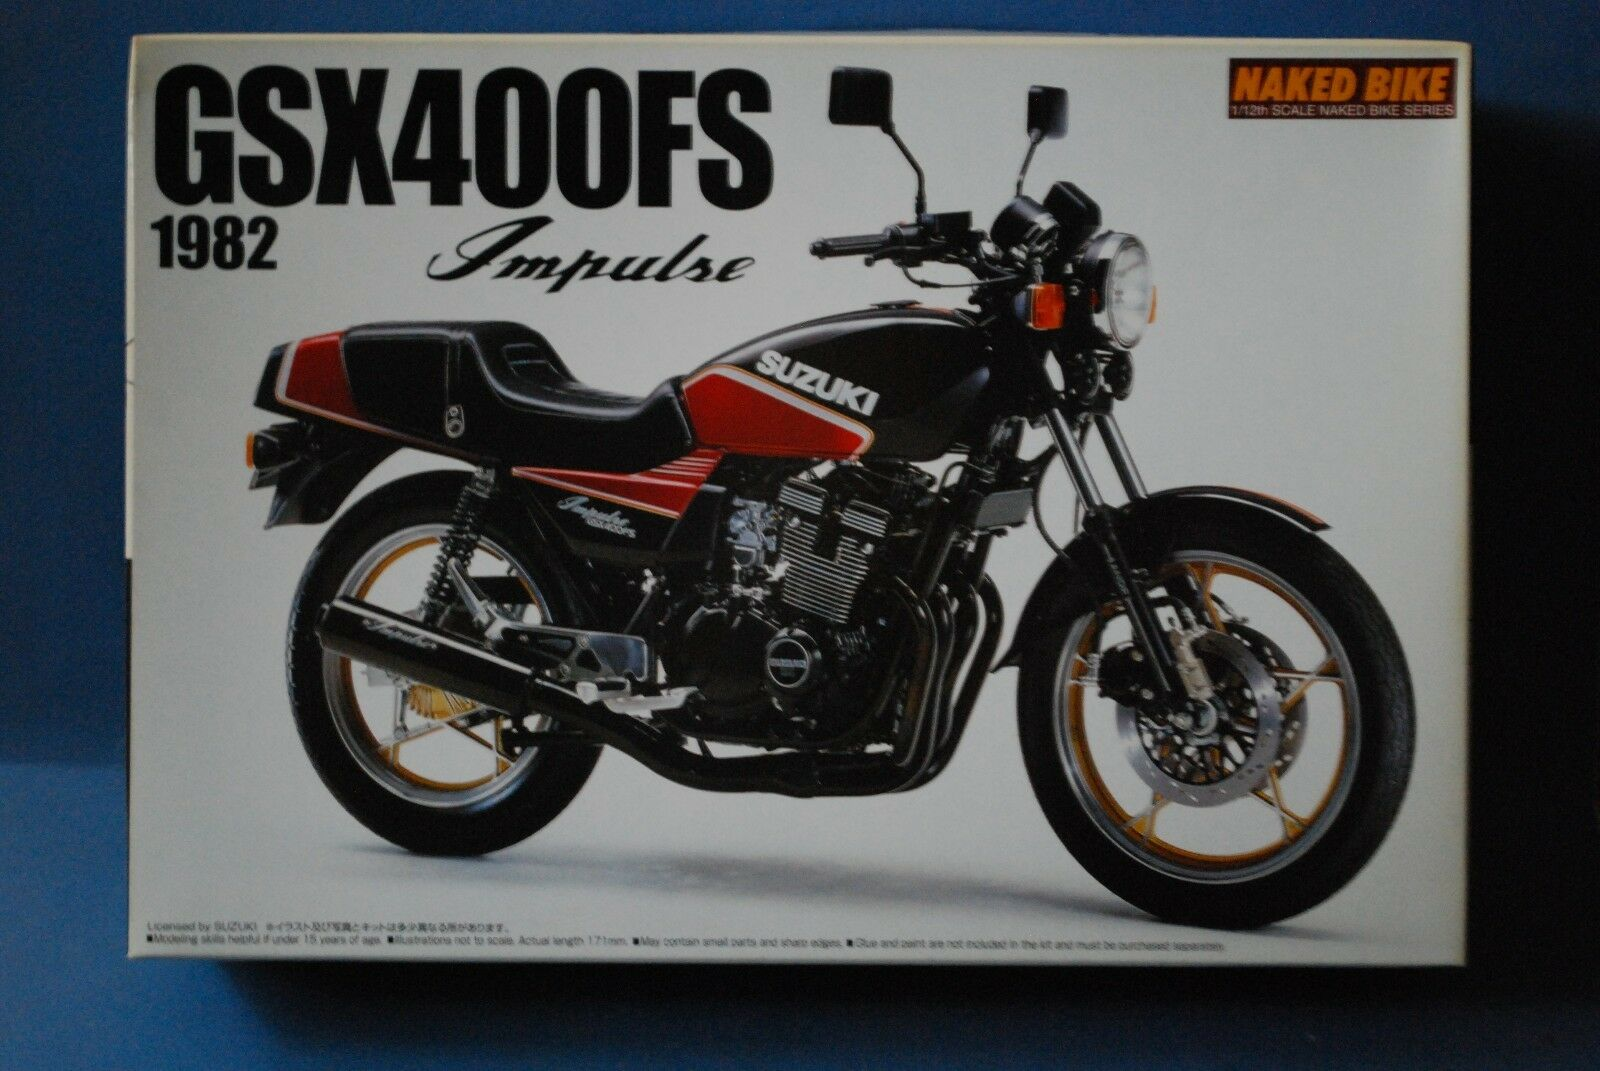 AOSHIMA JAPAN 1 12  SUSUKI GSX400FS. IMPULSE 1982.  VERY RARE KIT